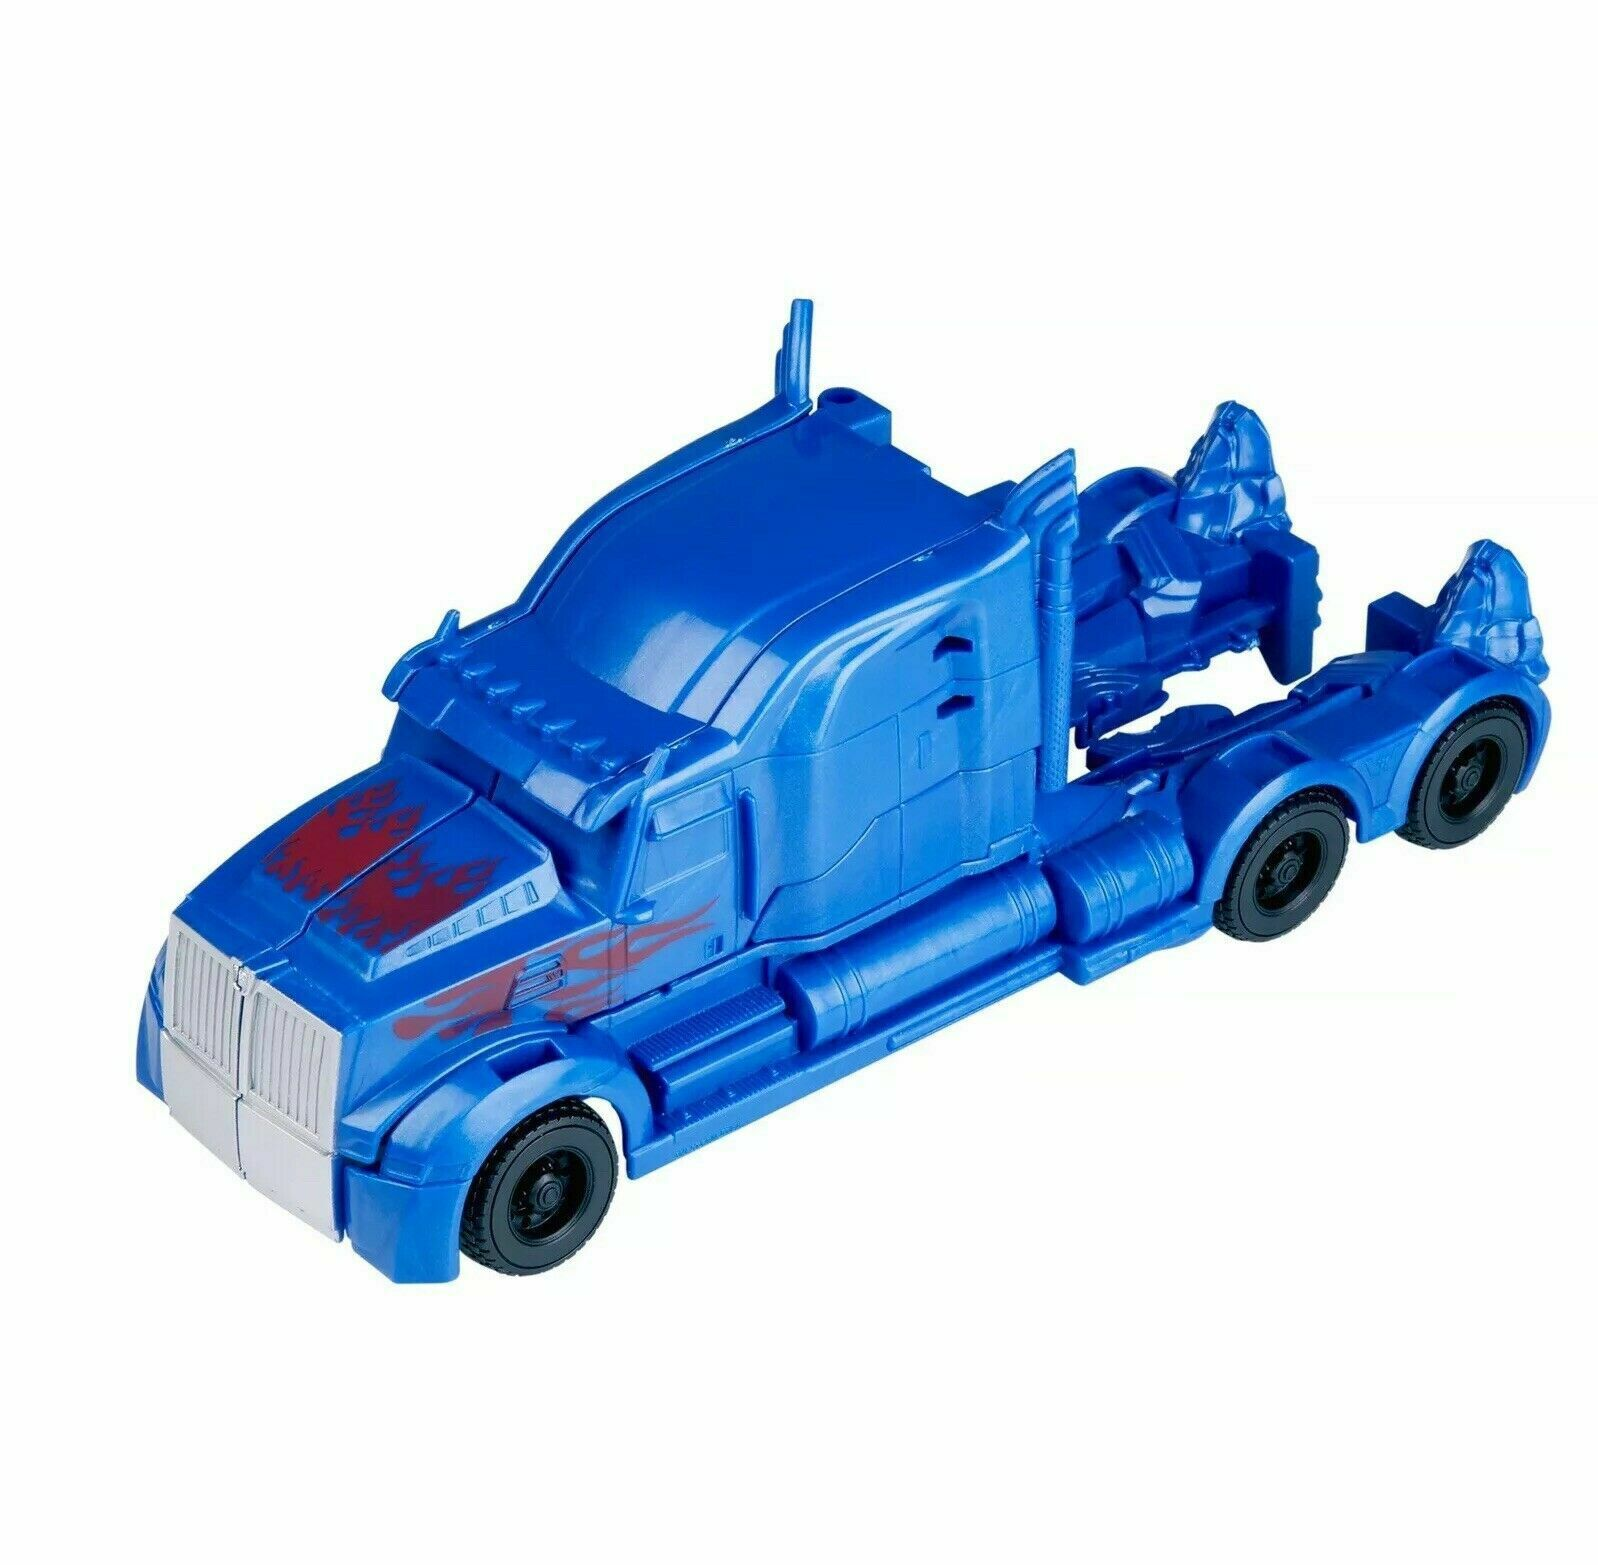 Transformers Optimus Prime - Hasbro E0699